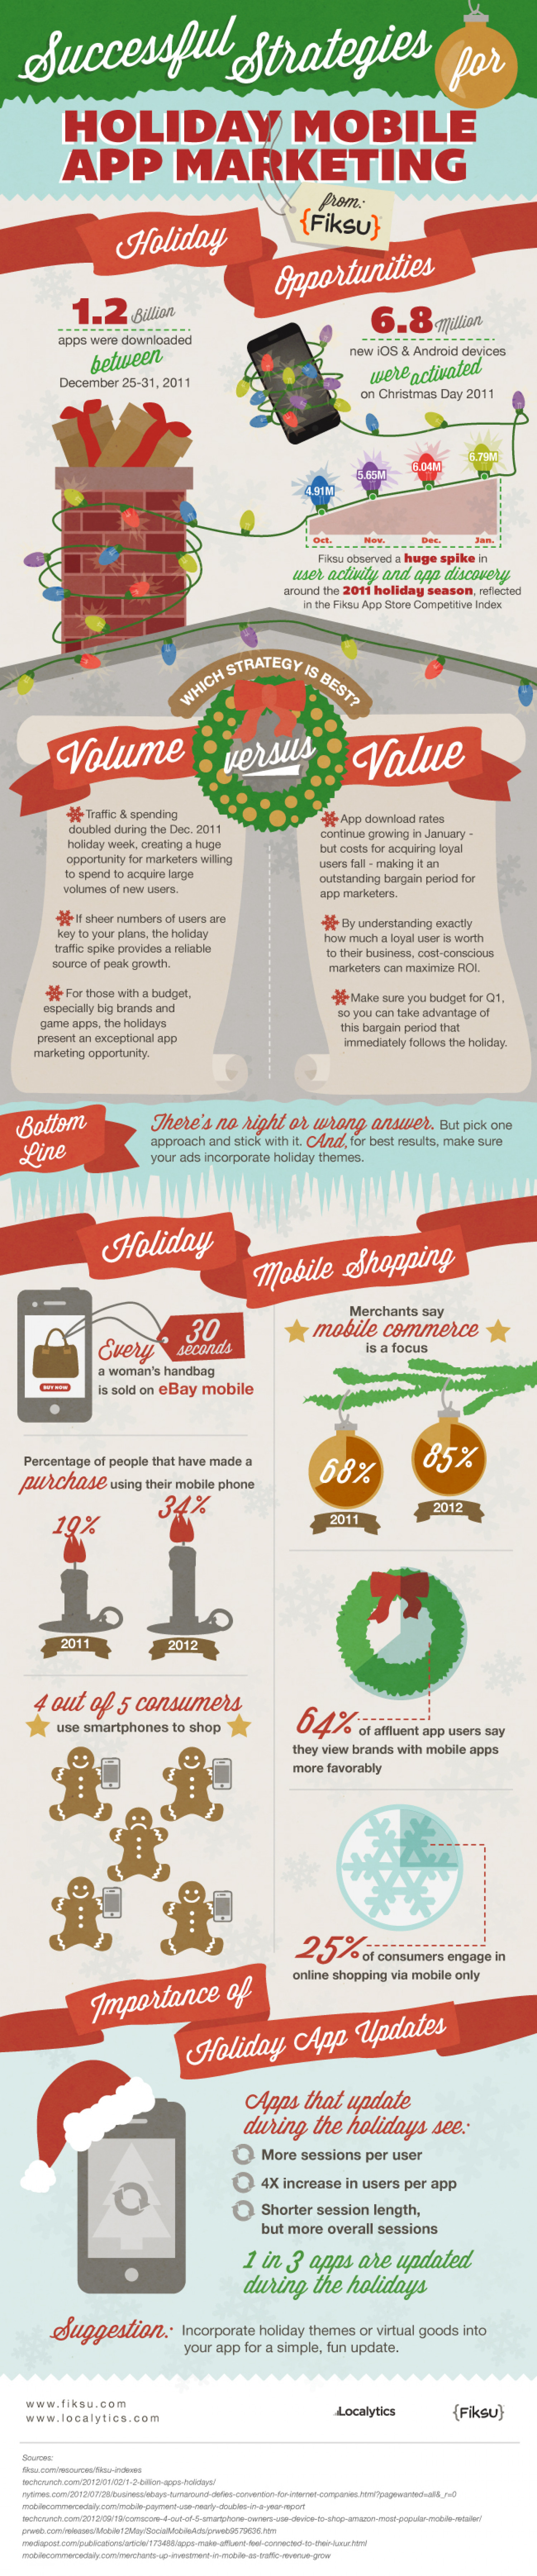 Successful Strategies for Holiday Mobile App Marketing Infographic